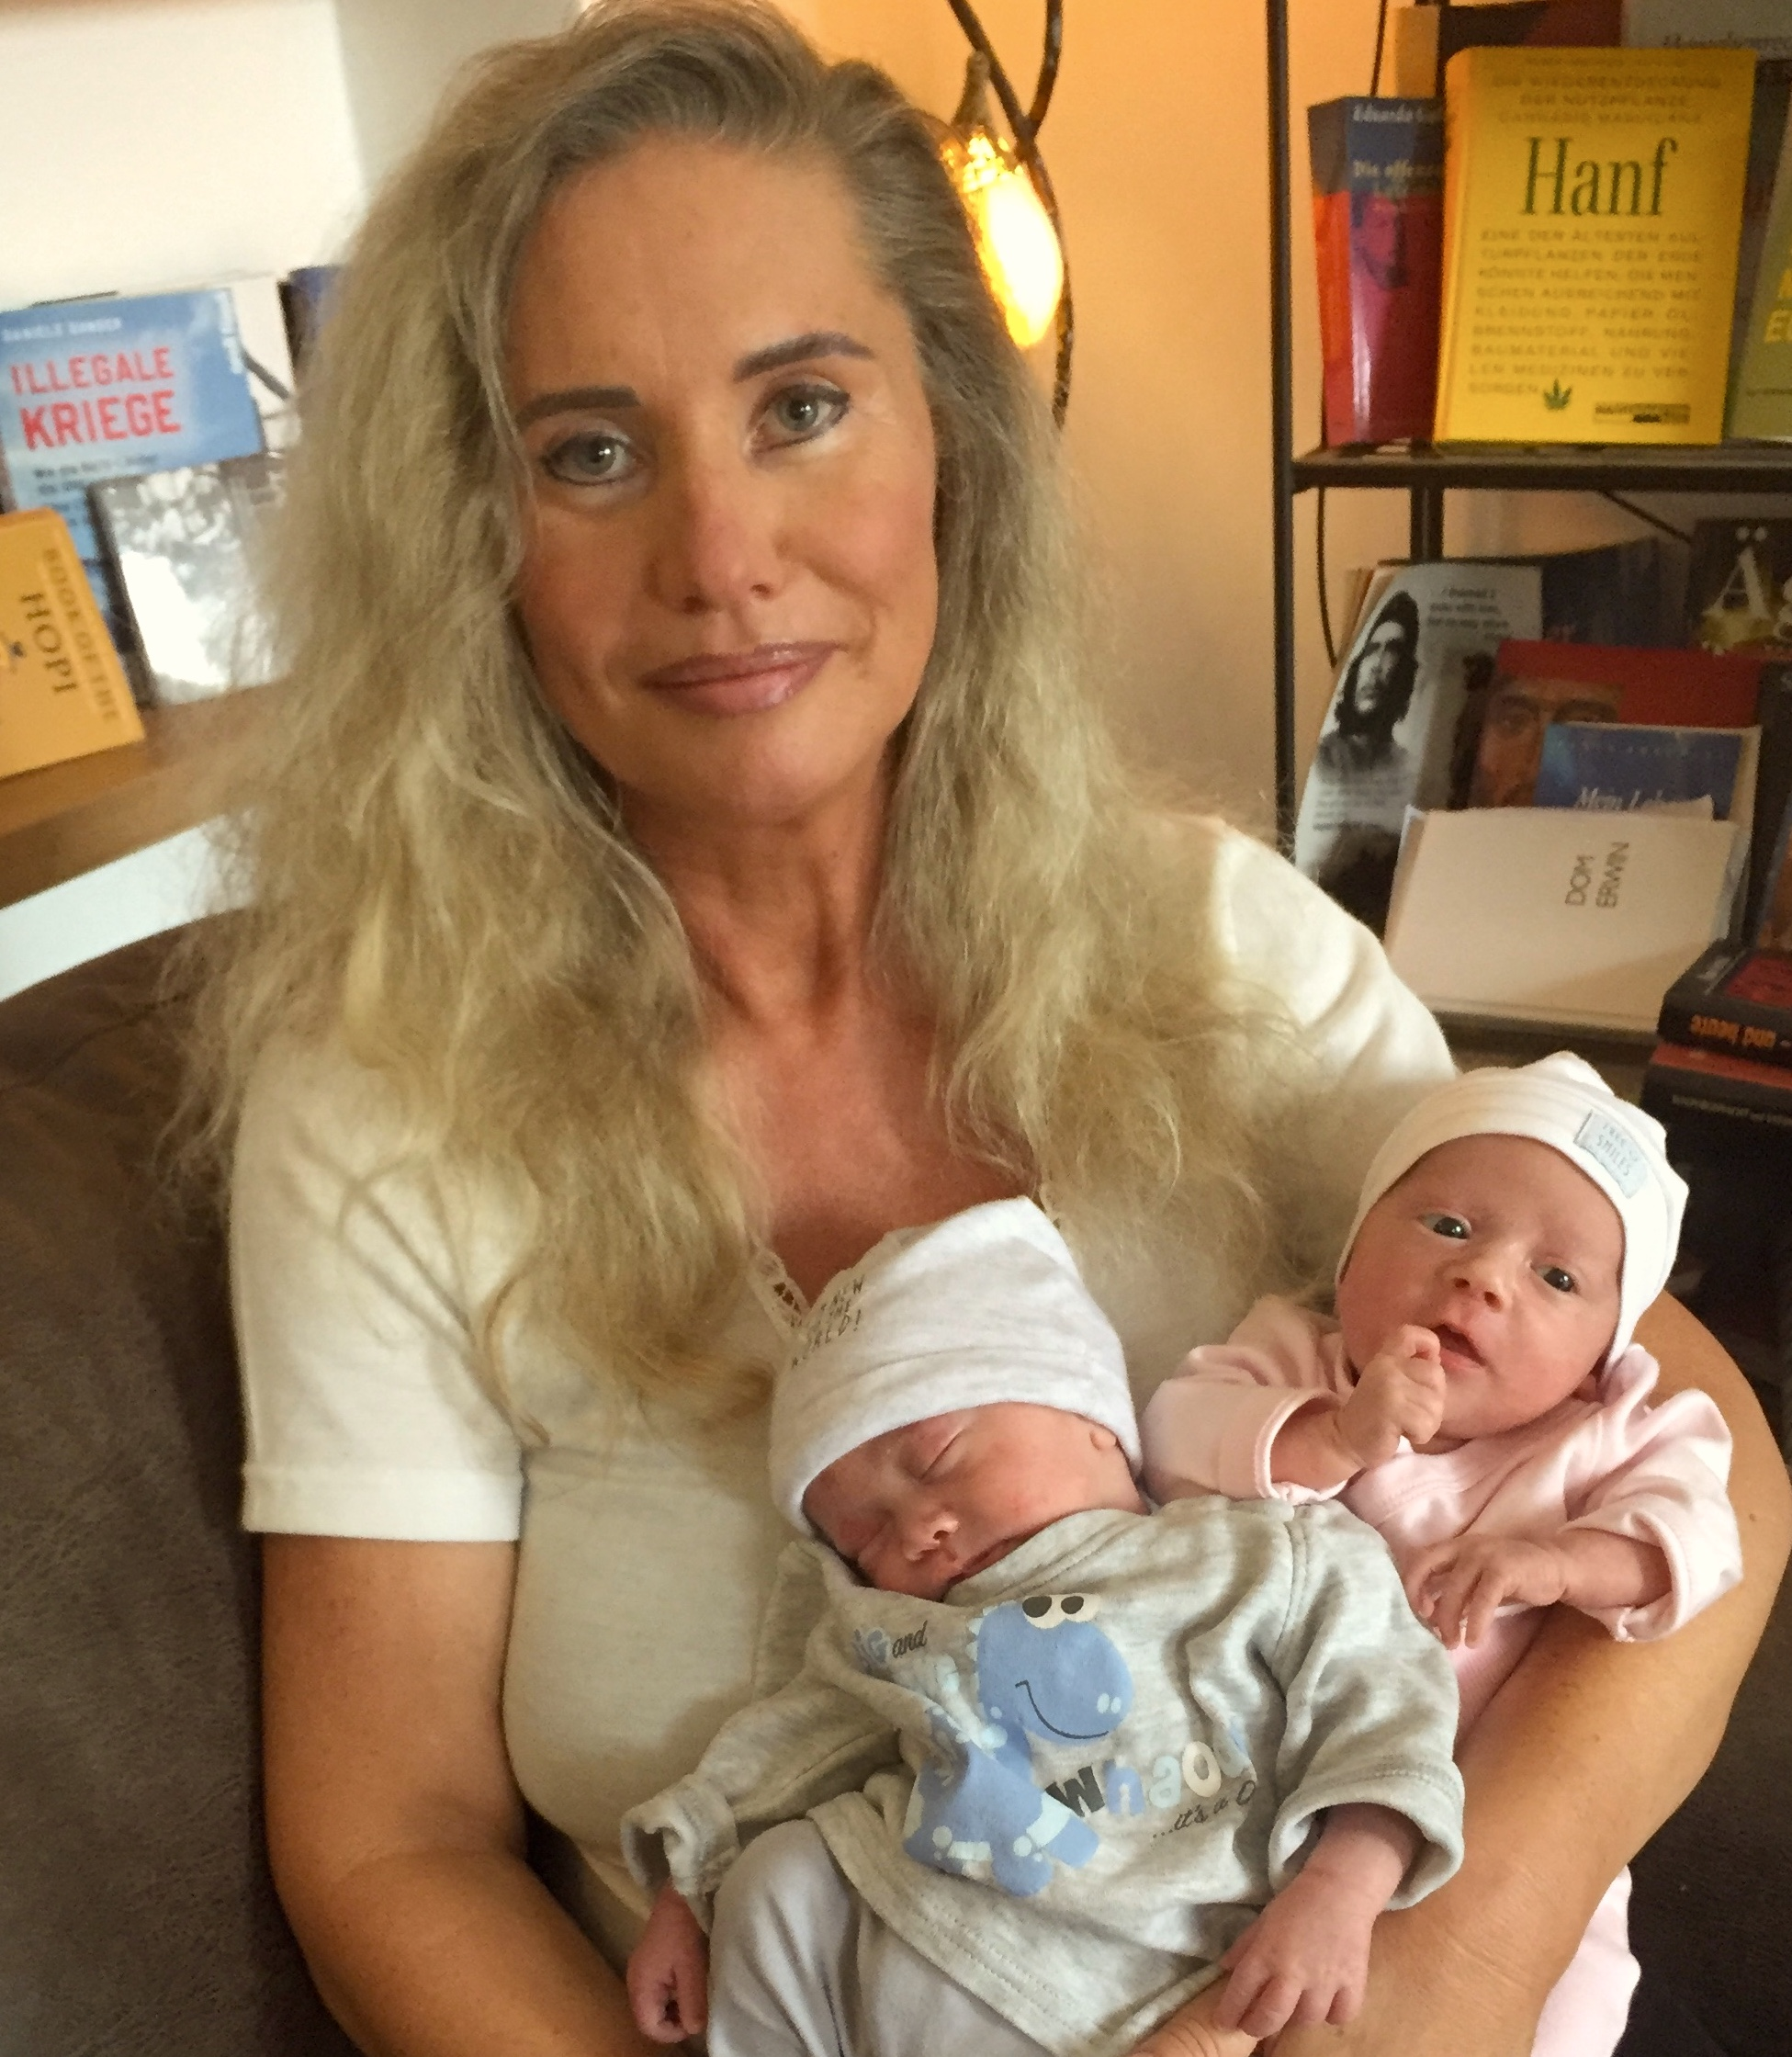 "Journalist/author, environmental and human rights activist Verena Susanne Daum with her new born twins Shania Jolene and Noah Balian, www.progression.at, Garden Eden Organisation, books: ""Verantwortungslos - Zivilcourage für ein Ende des Kriegs gegen die Menschlichkeit"" (2015) and ""Dom Erwin"" (2006)"